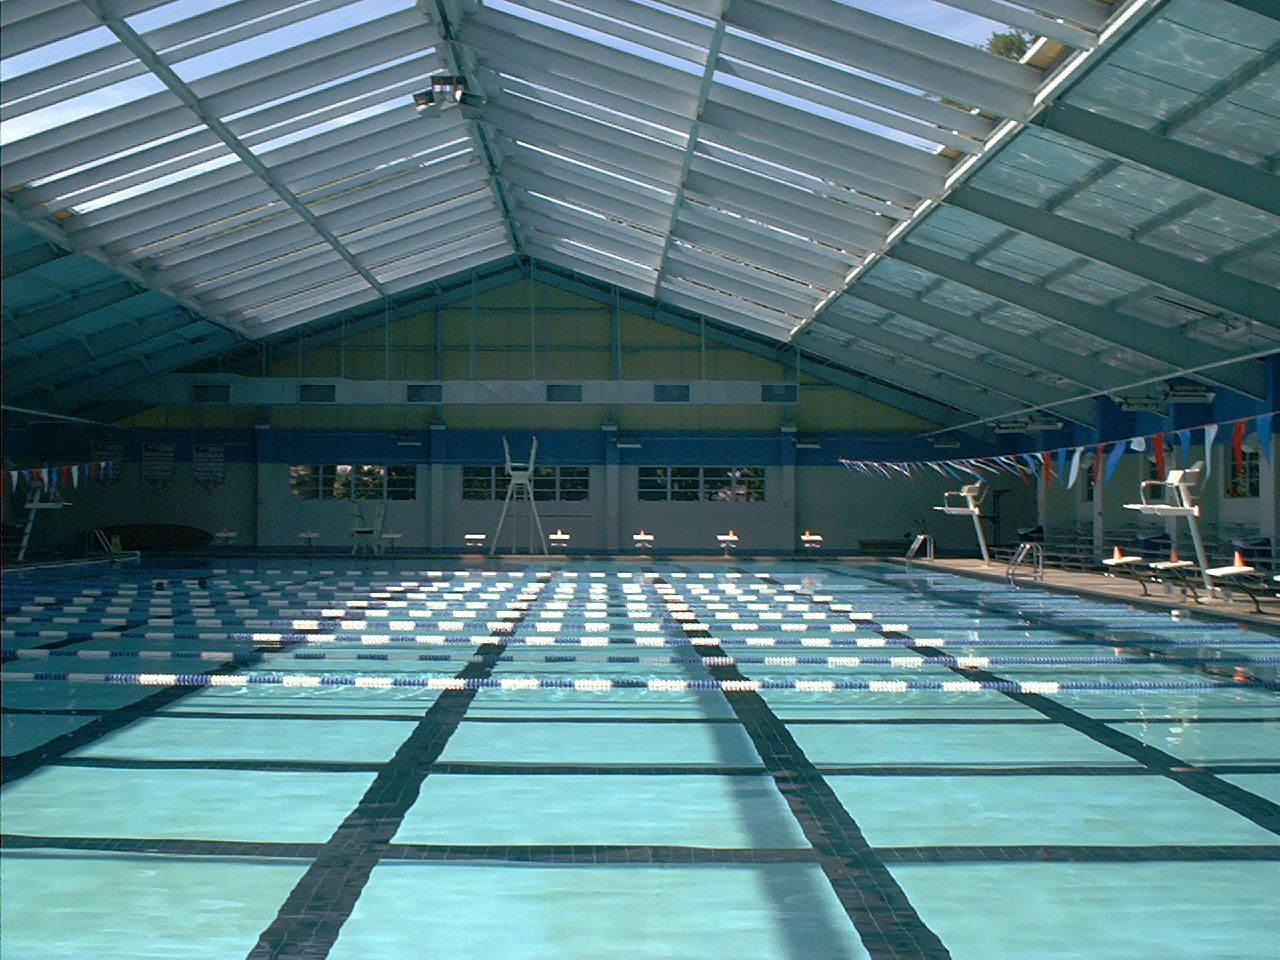 The Biloxi Natatorium Is An Olympic Size Pool 50 Meters Long By 25 Yards Wide With A Shallow